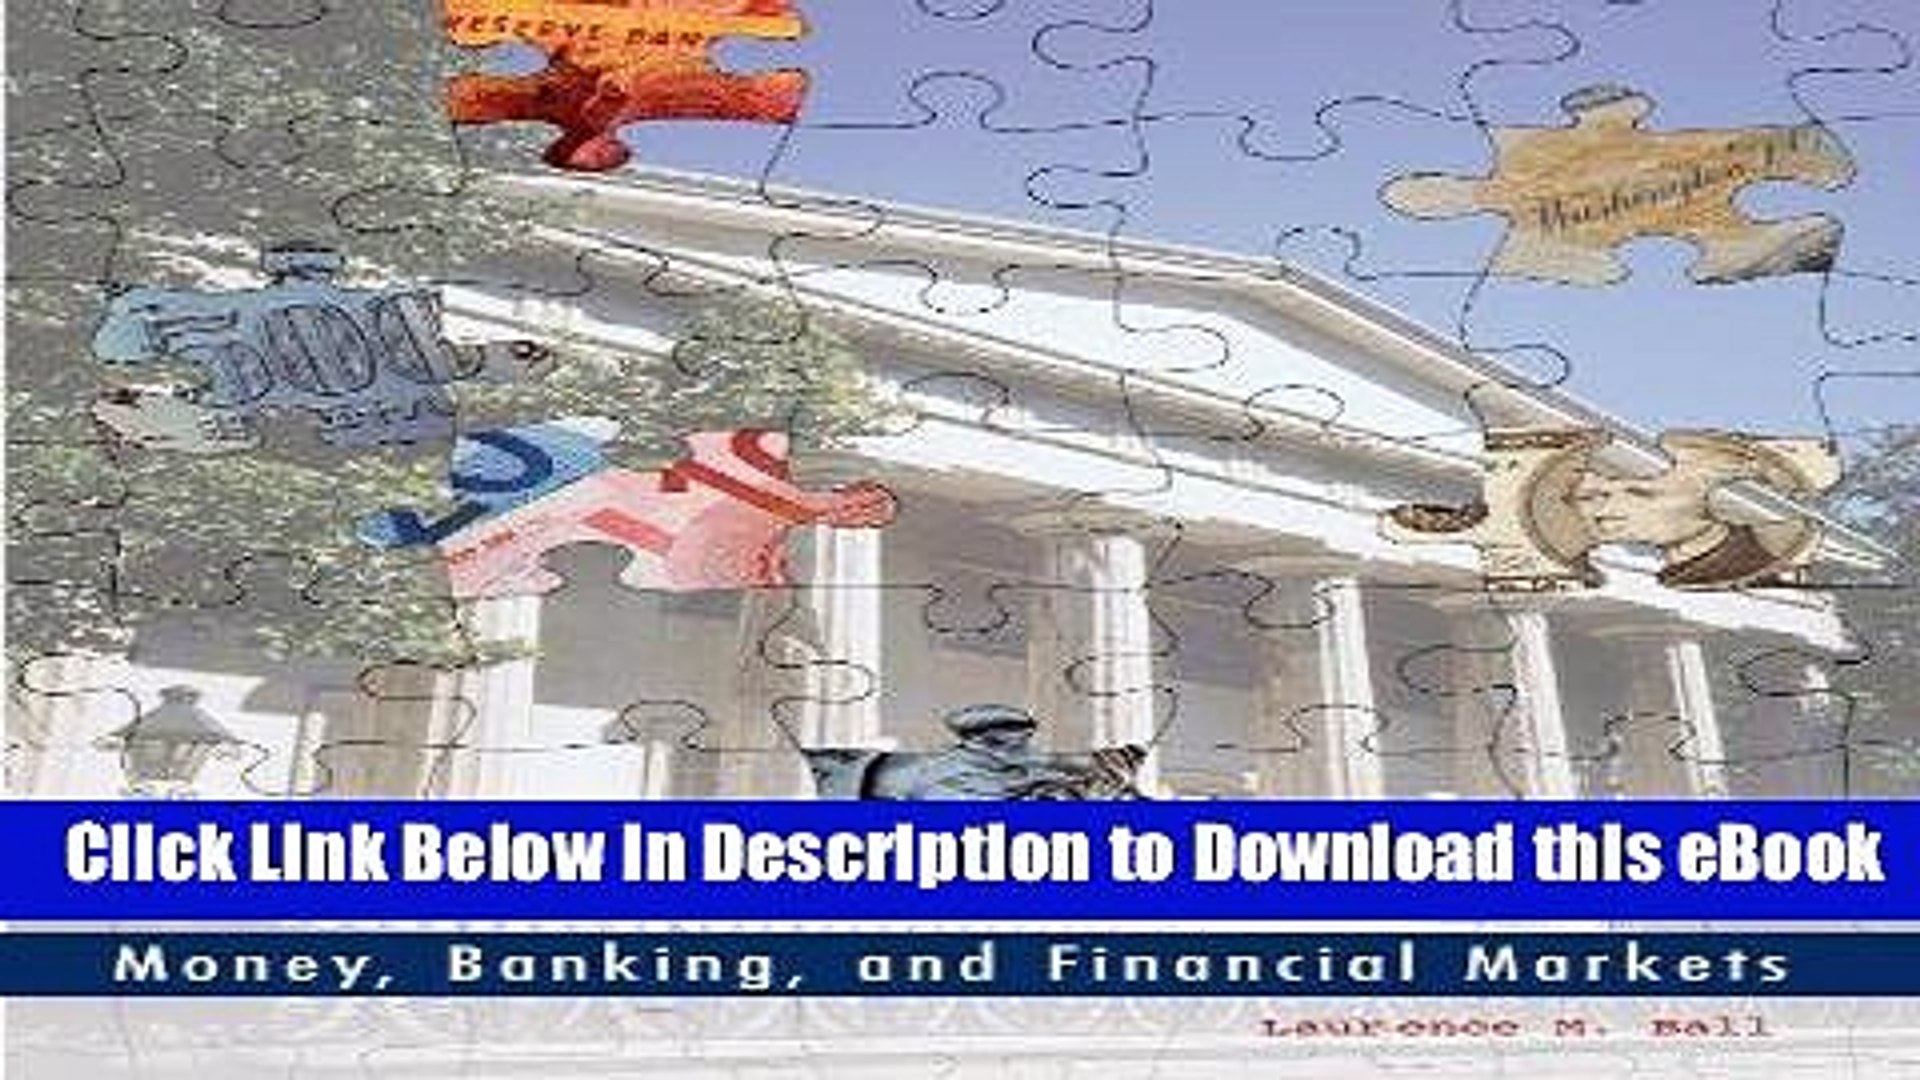 eBook Free Money, Banking, and Financial Markets Free Online